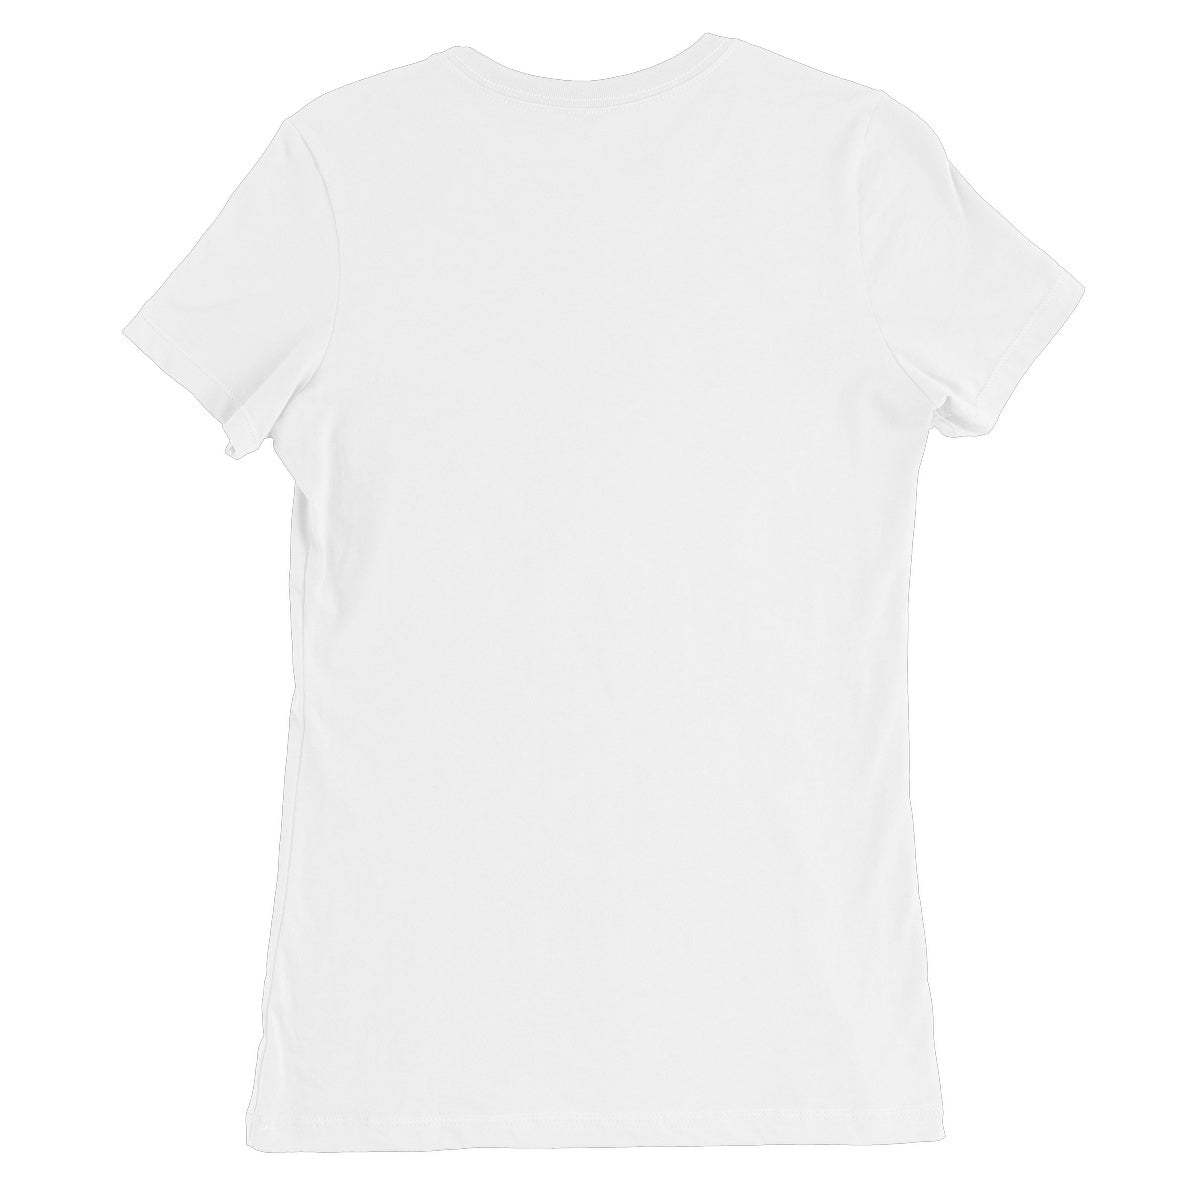 Tasha Steelz Women's Favourite T-Shirt